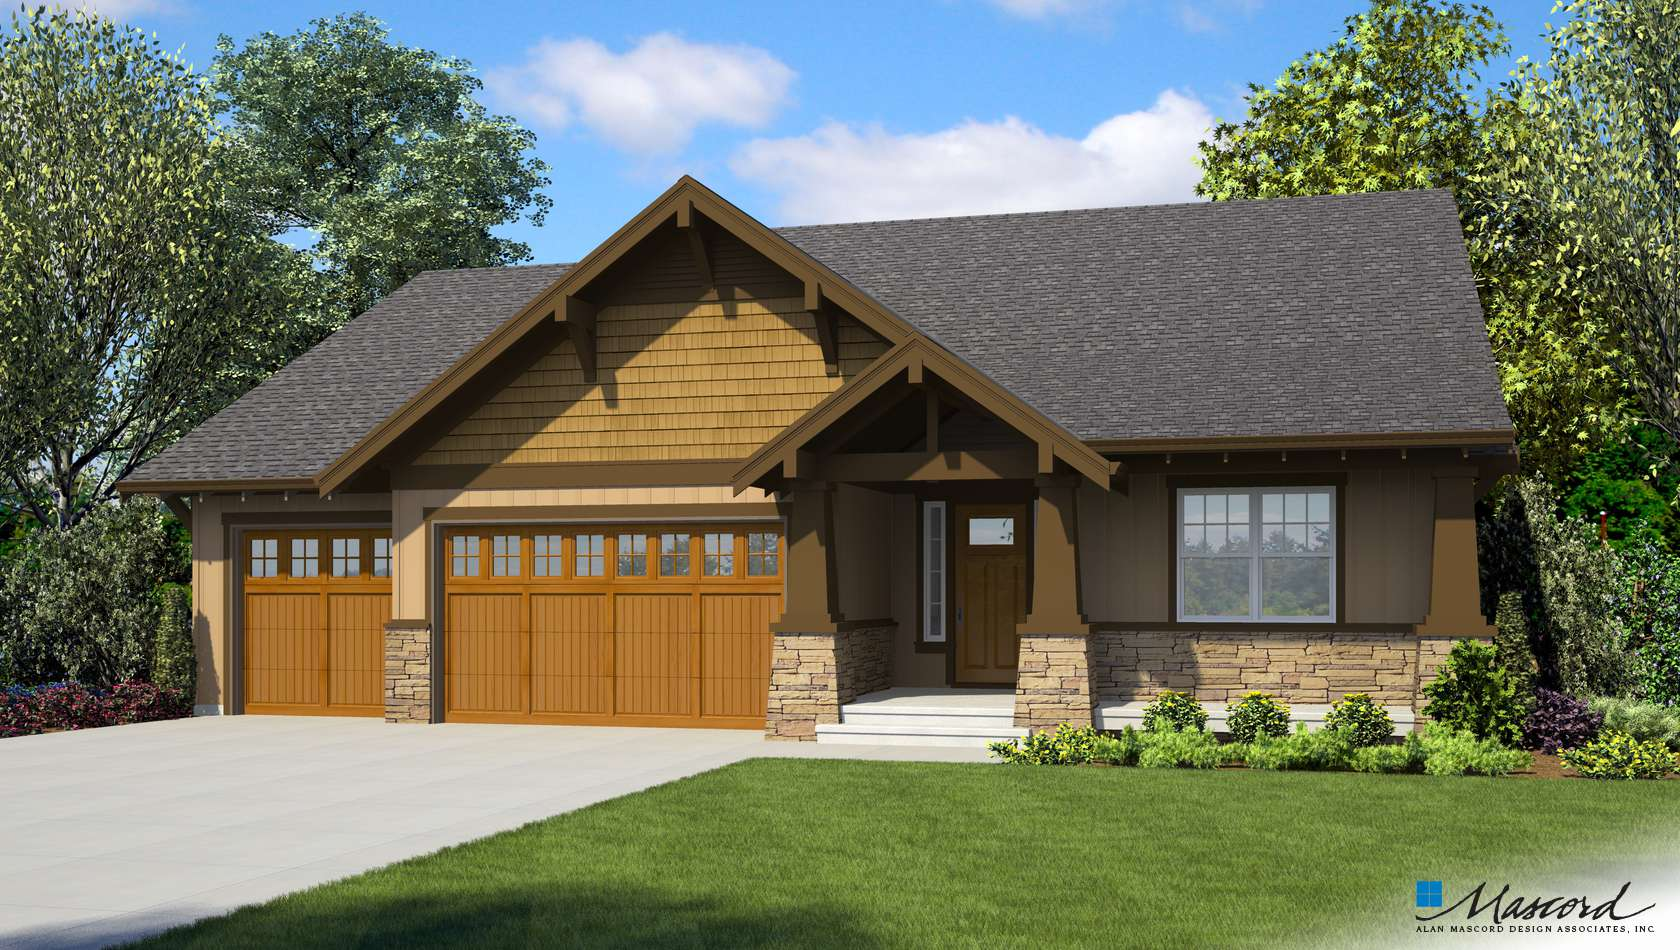 Main image for house plan 1168A: The Americano